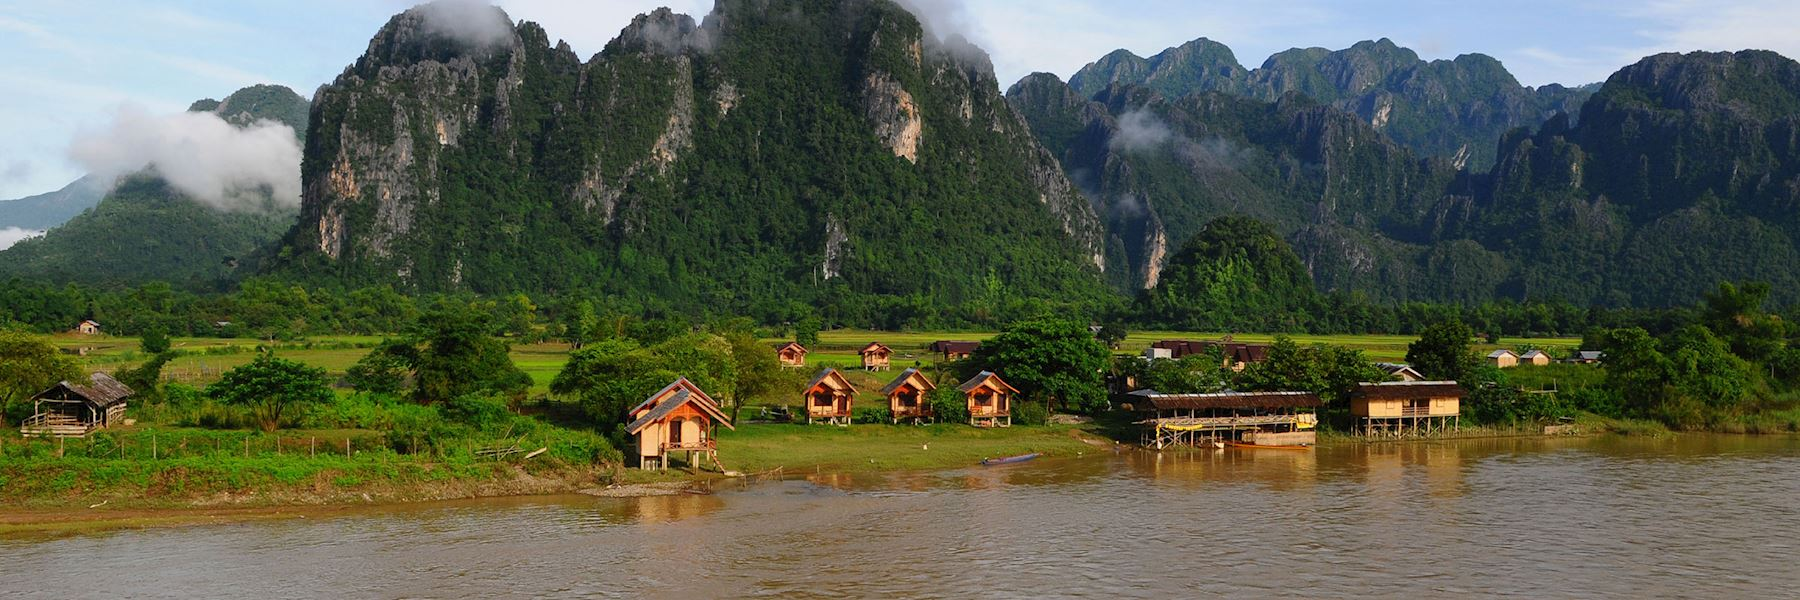 laos itinerary ideas | audley travel